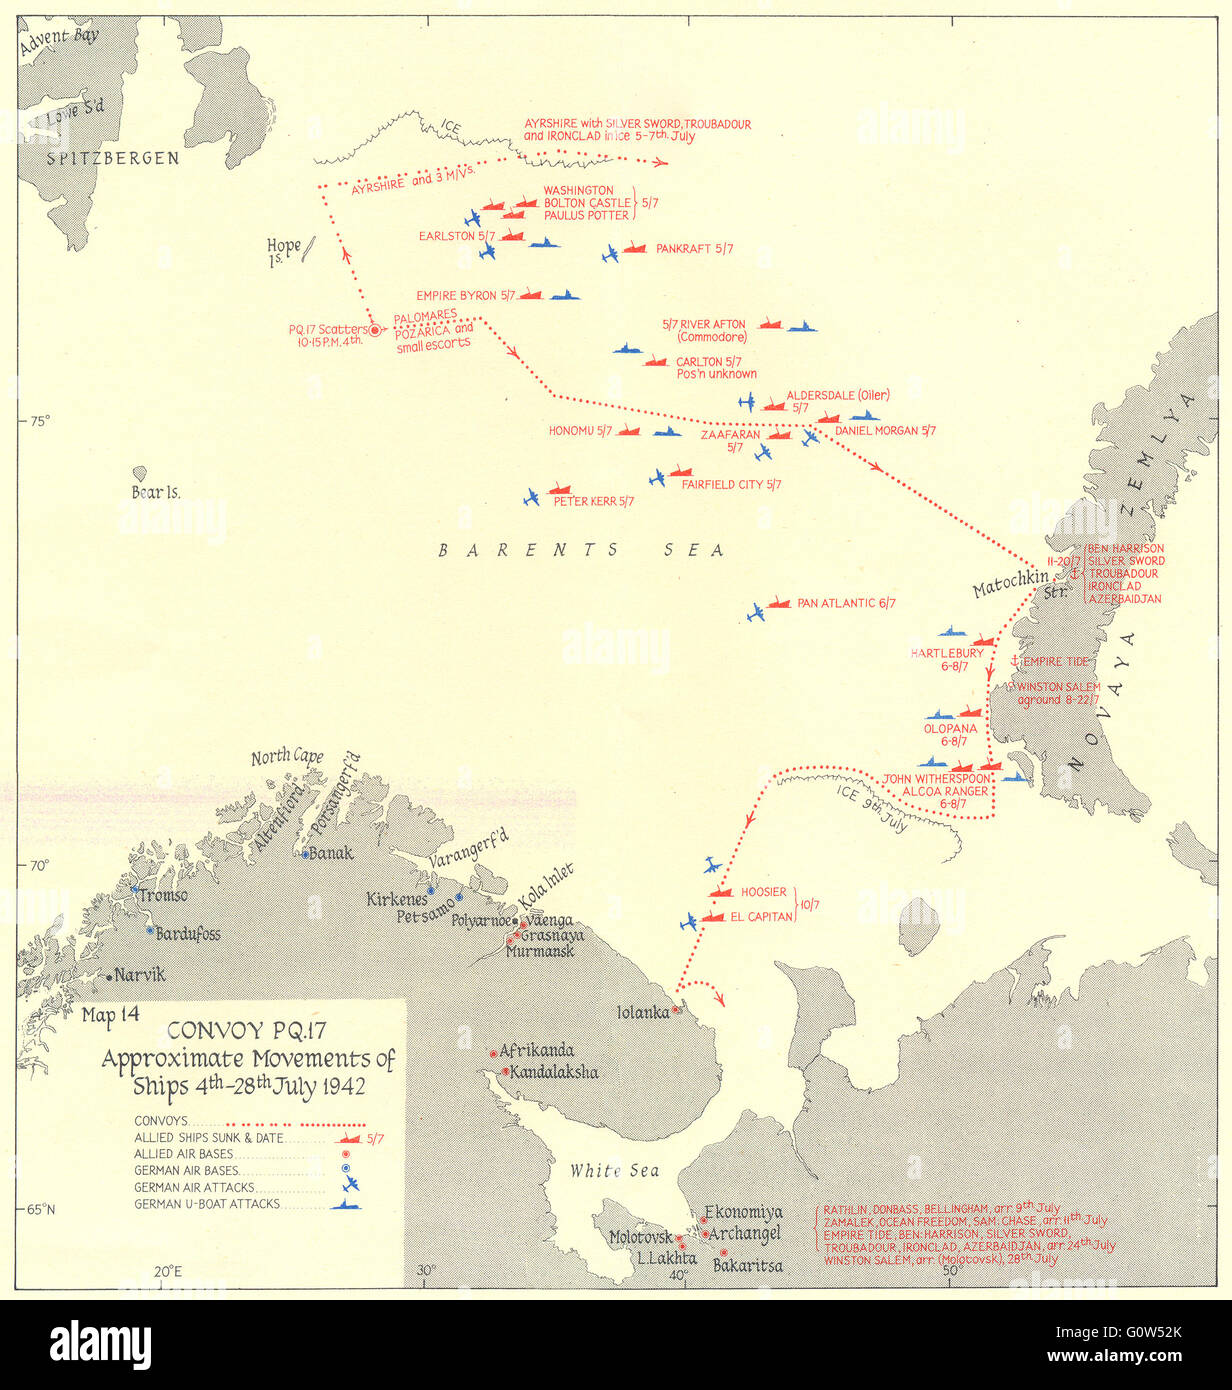 ARCTIC: Convoy PQ 17 movements of ships 4th-28th July 1942, 1956 vintage map - Stock Image